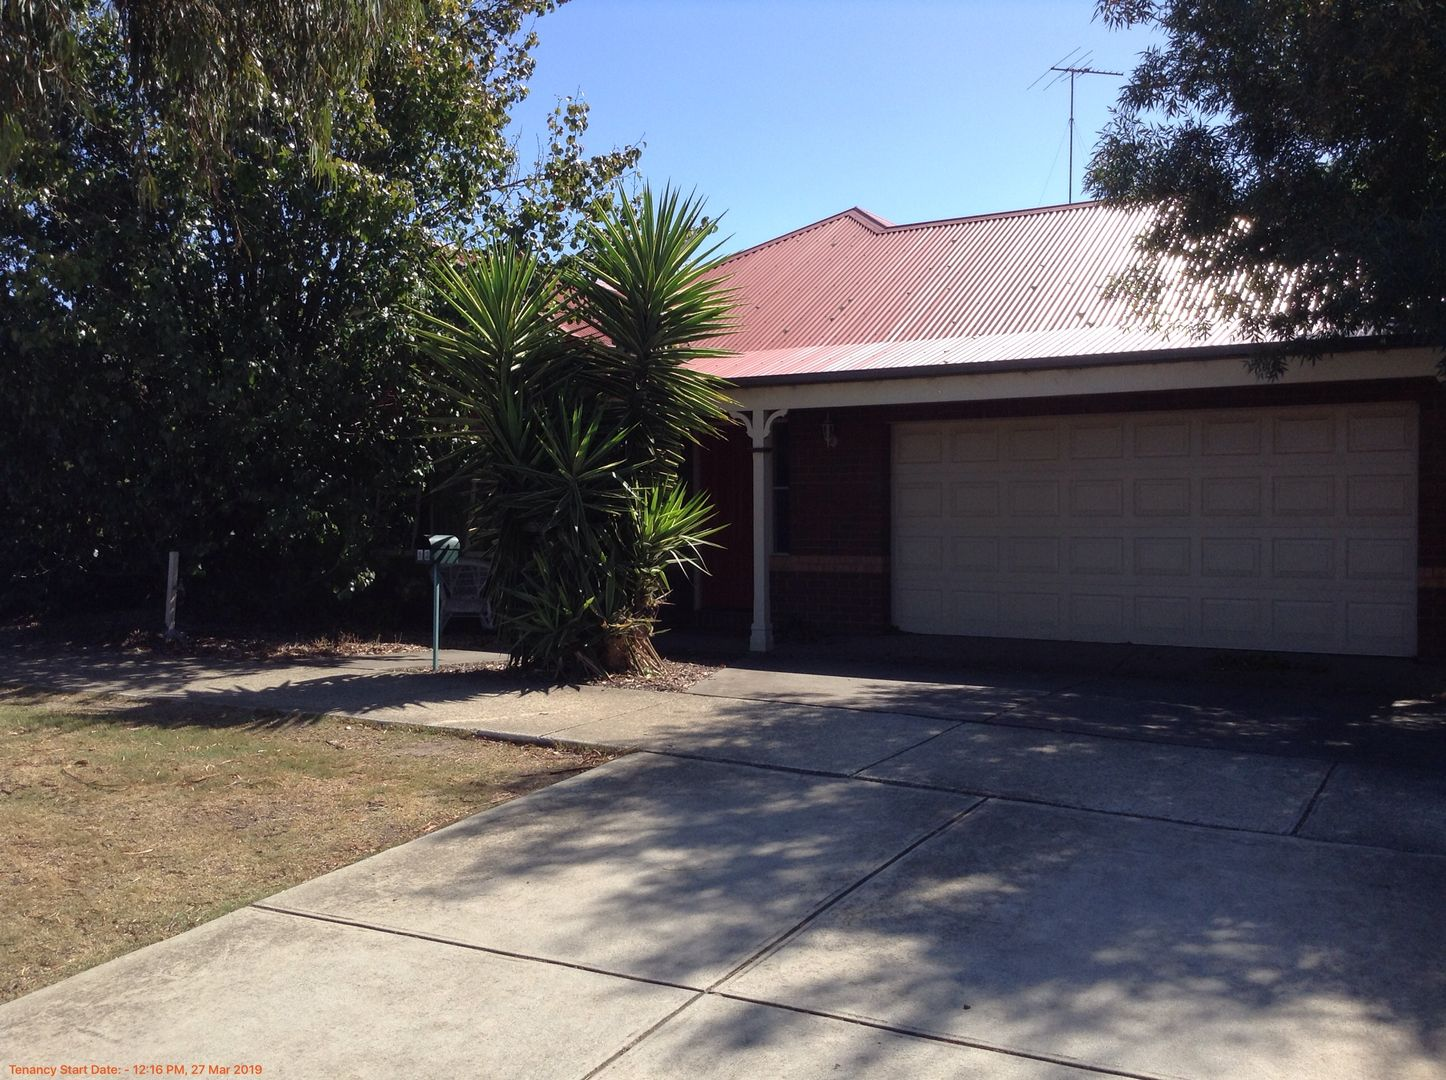 13 Grove Road, Marshall VIC 3216, Image 0